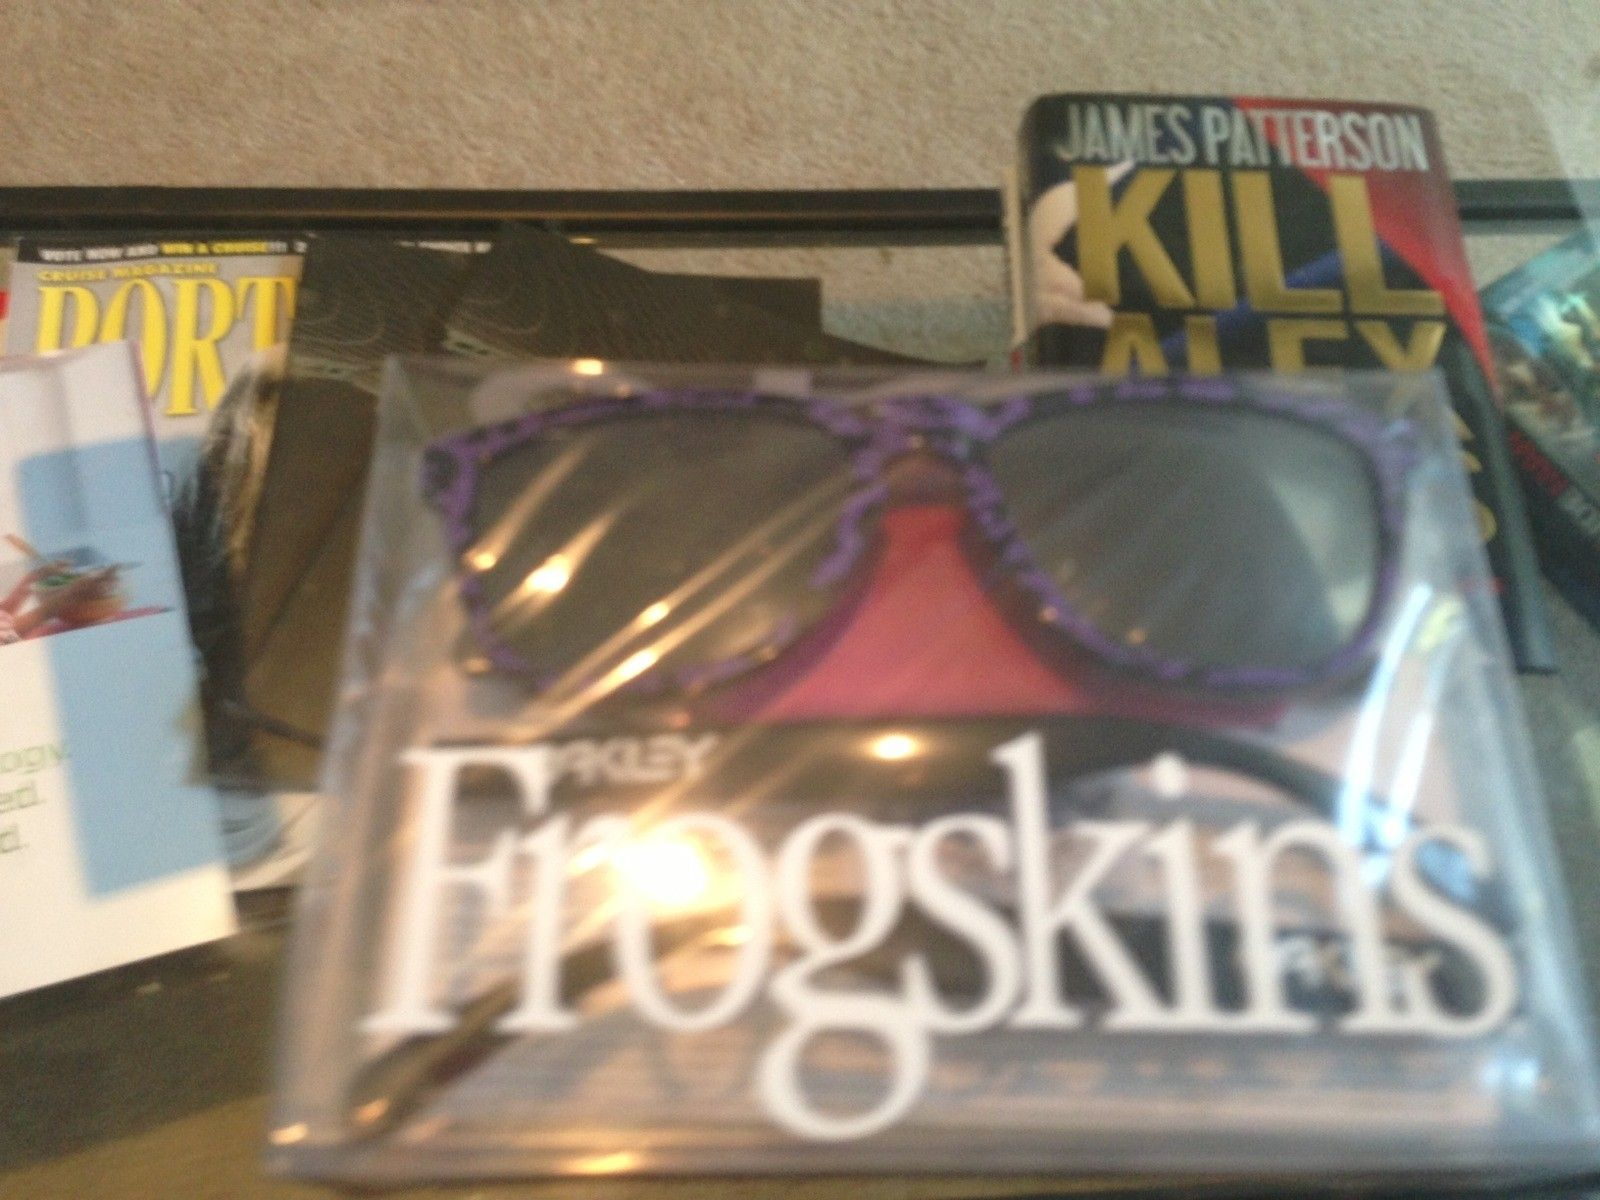 ANDREW PETTERSON FROGSKINS, BANANA BEAT, And Other ULTRA RARE - bj90.jpg